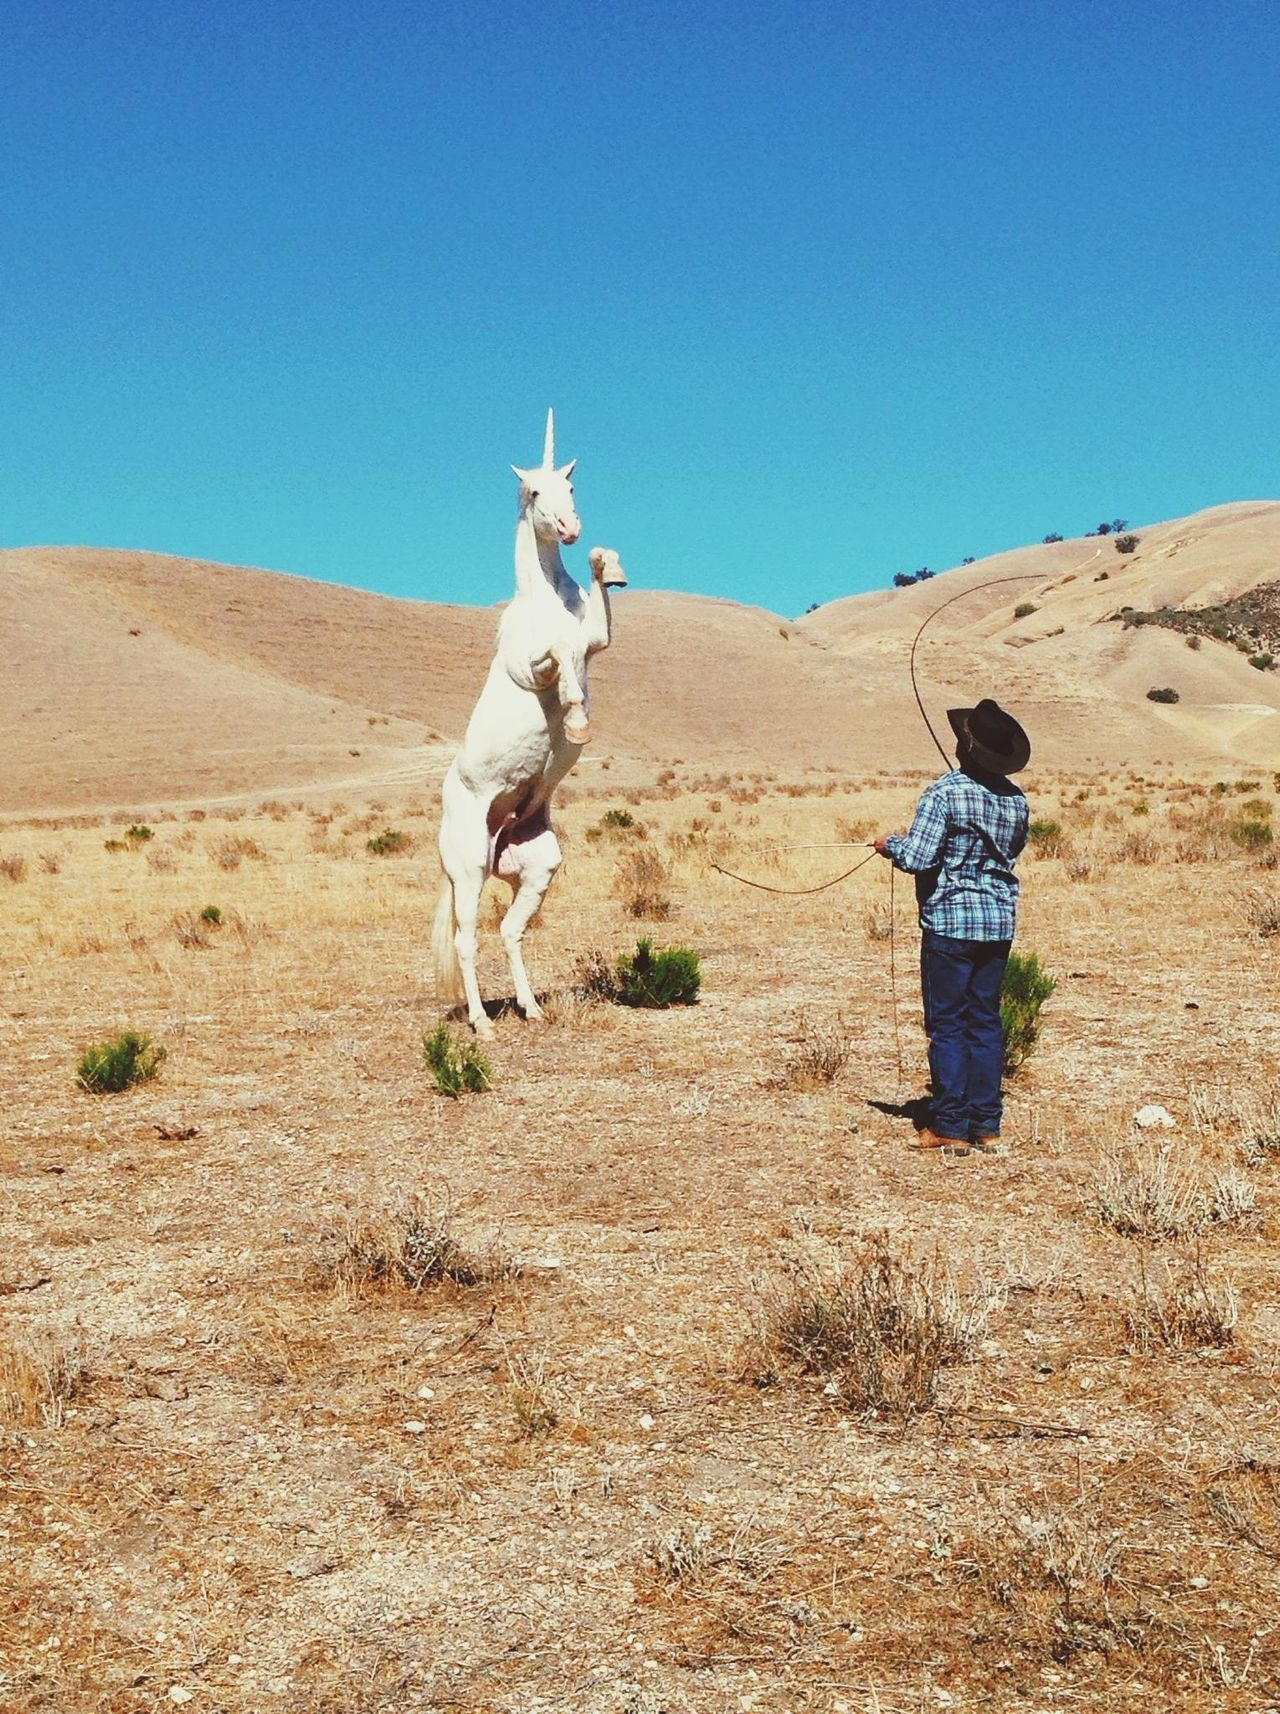 how to train a unicorn Making Movies Stand Out From The Crowd